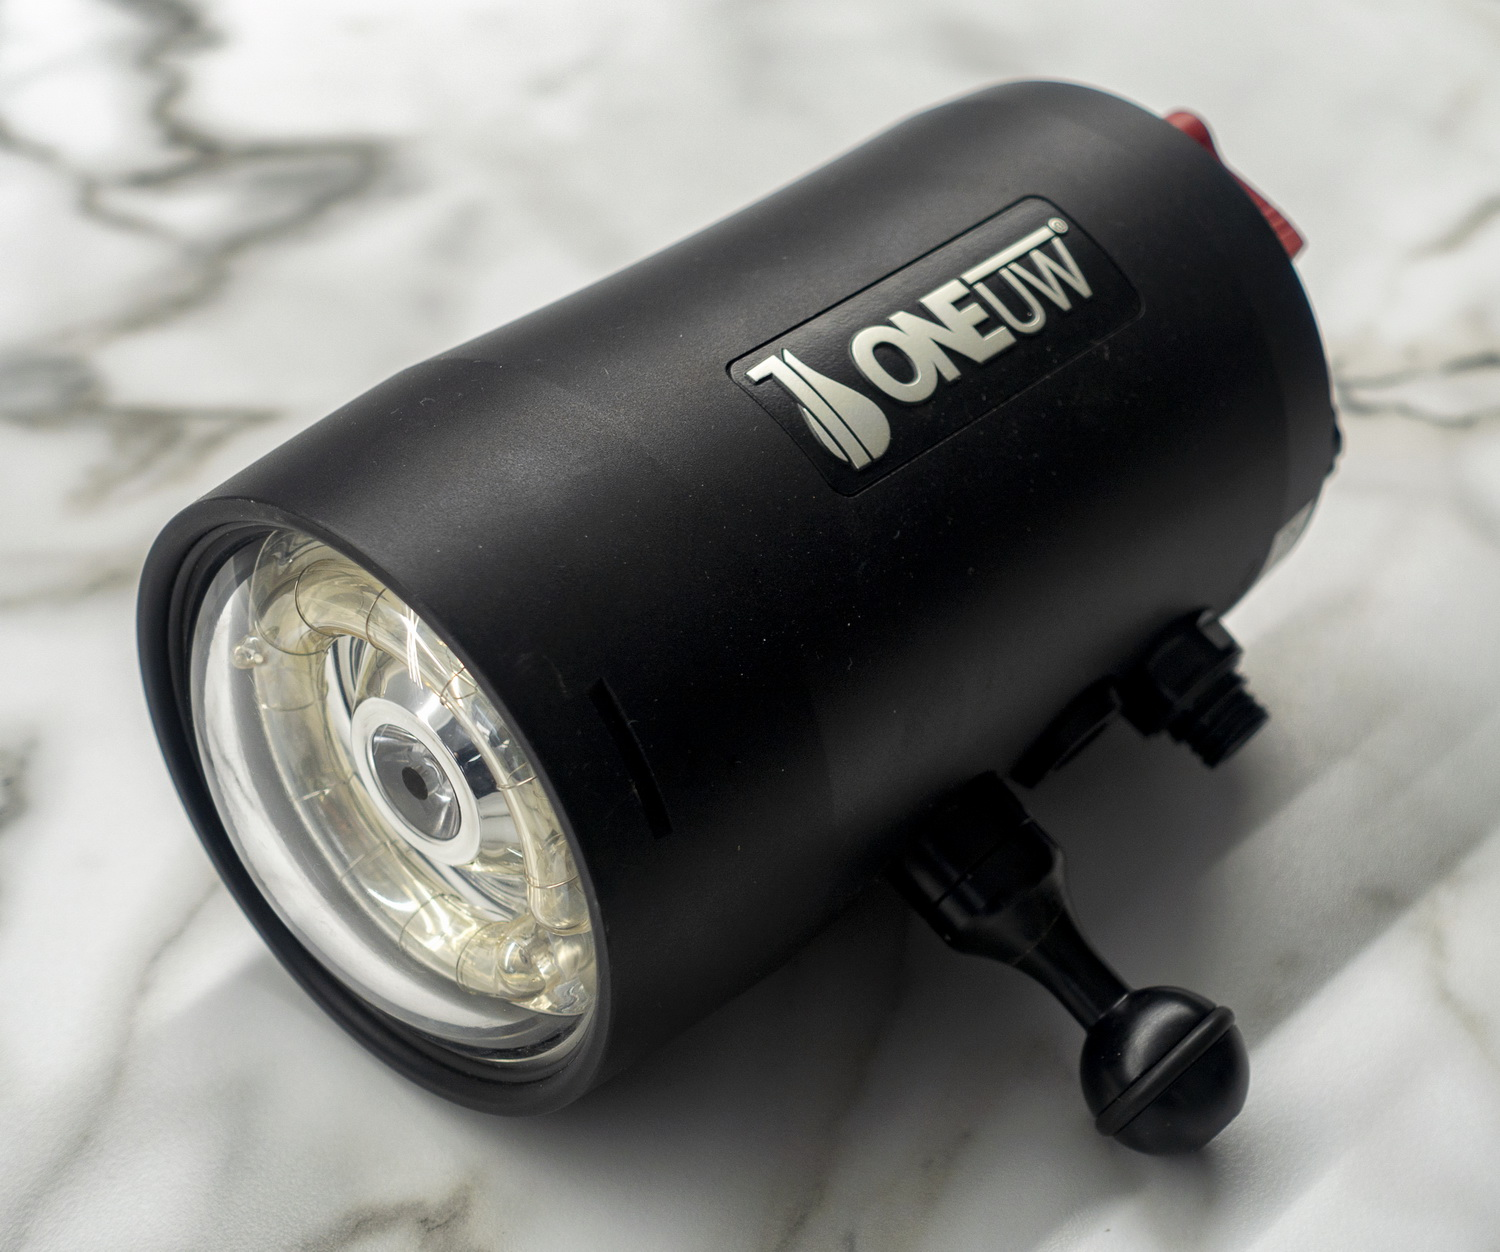 ONEUW One160X Strobe Review Image